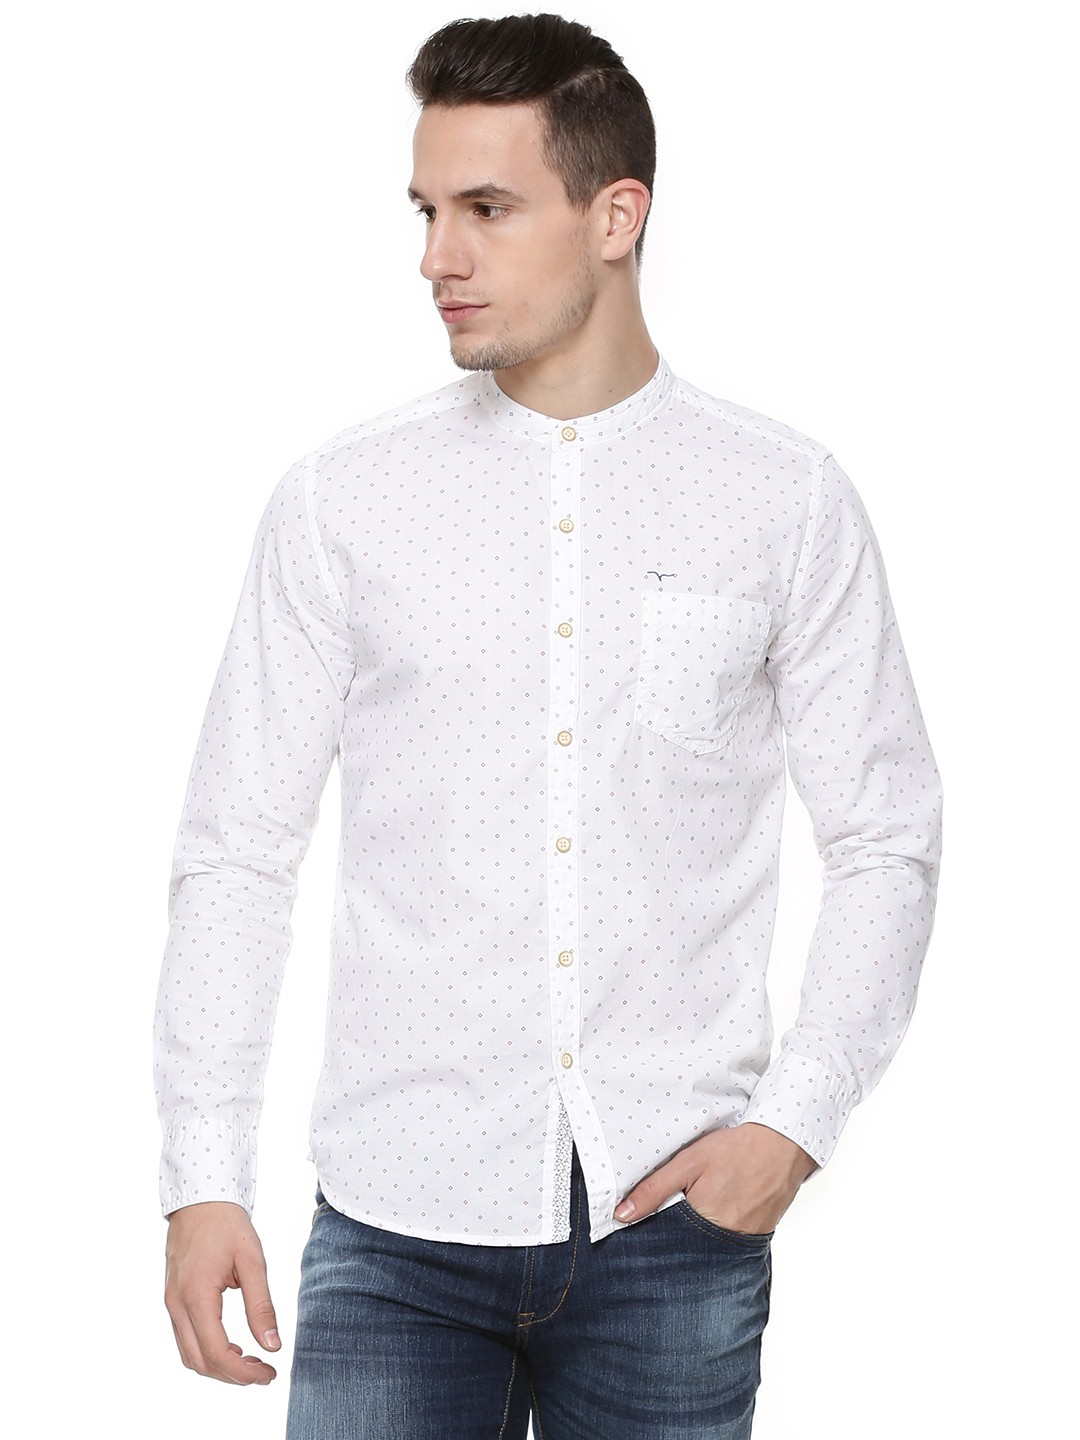 Find great deals on eBay for Mandarin Collar Shirt Mens in Casual Shirts for Different Occasions. Shop with confidence.